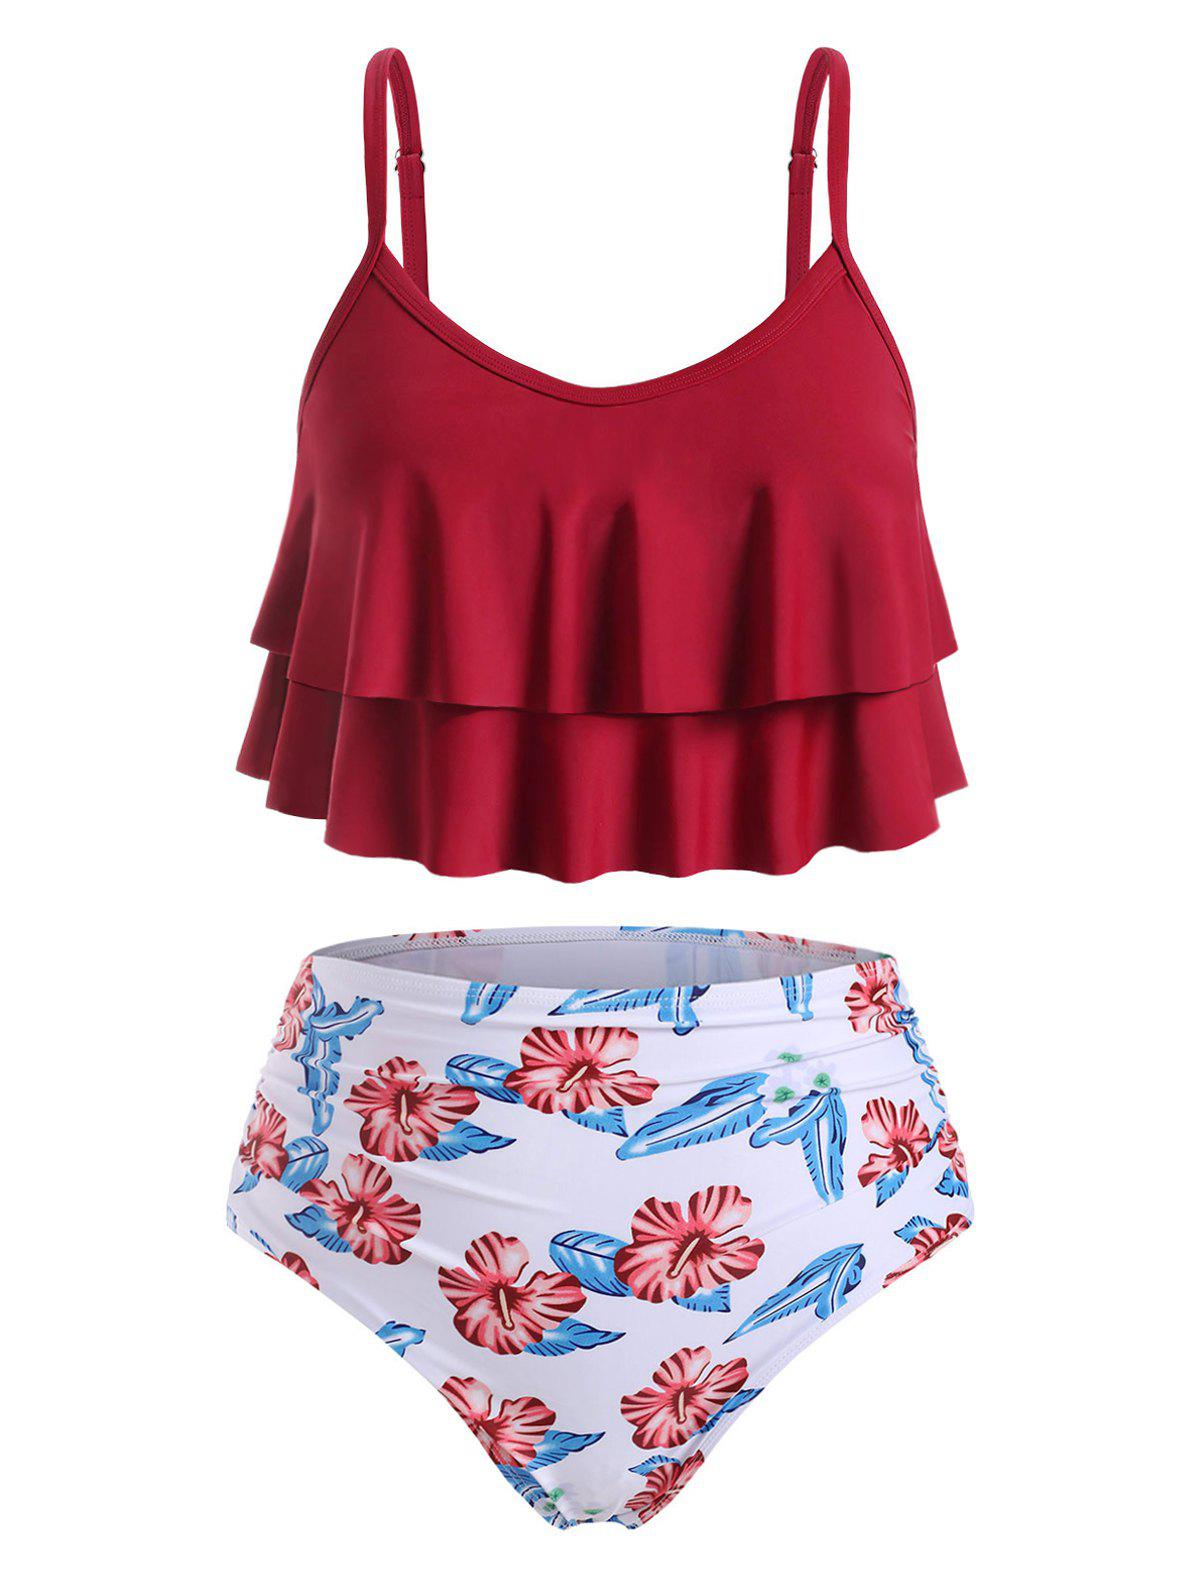 Tiered Flounces Floral Ruched High Waisted Plus Size Tankini Swimsuit - RED WINE 1X